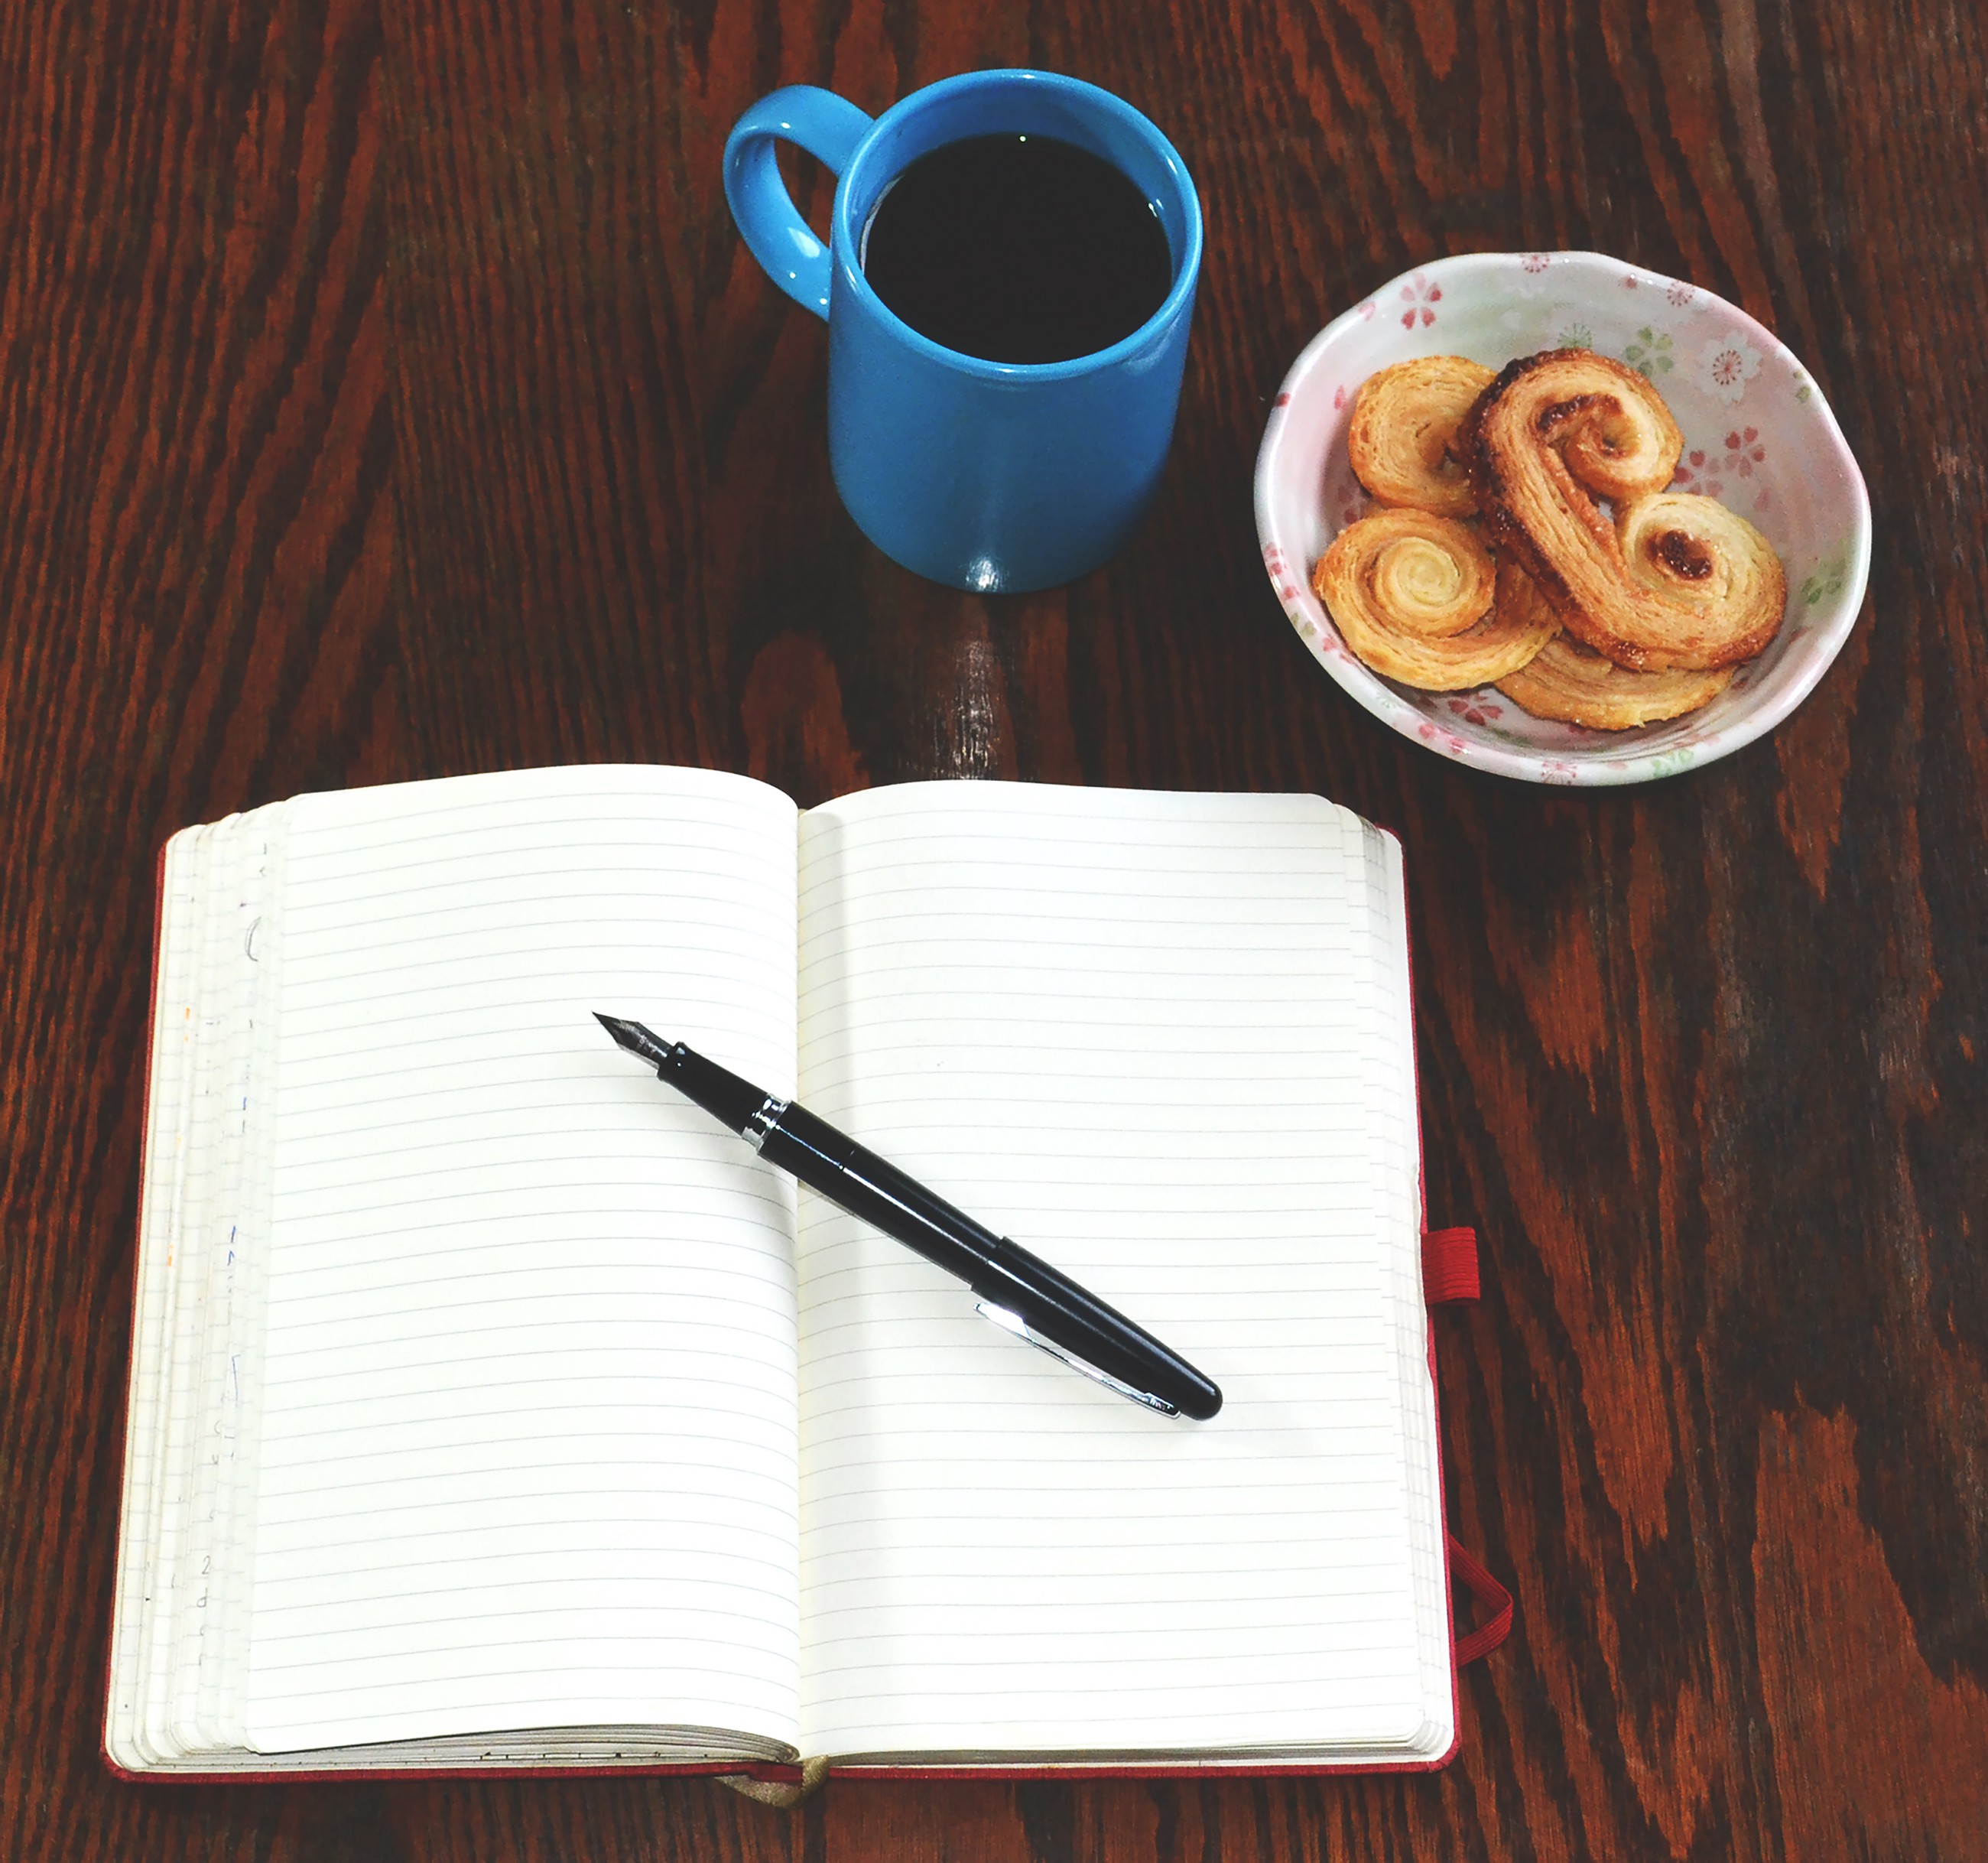 Celebrate Your Writing by Putting It First